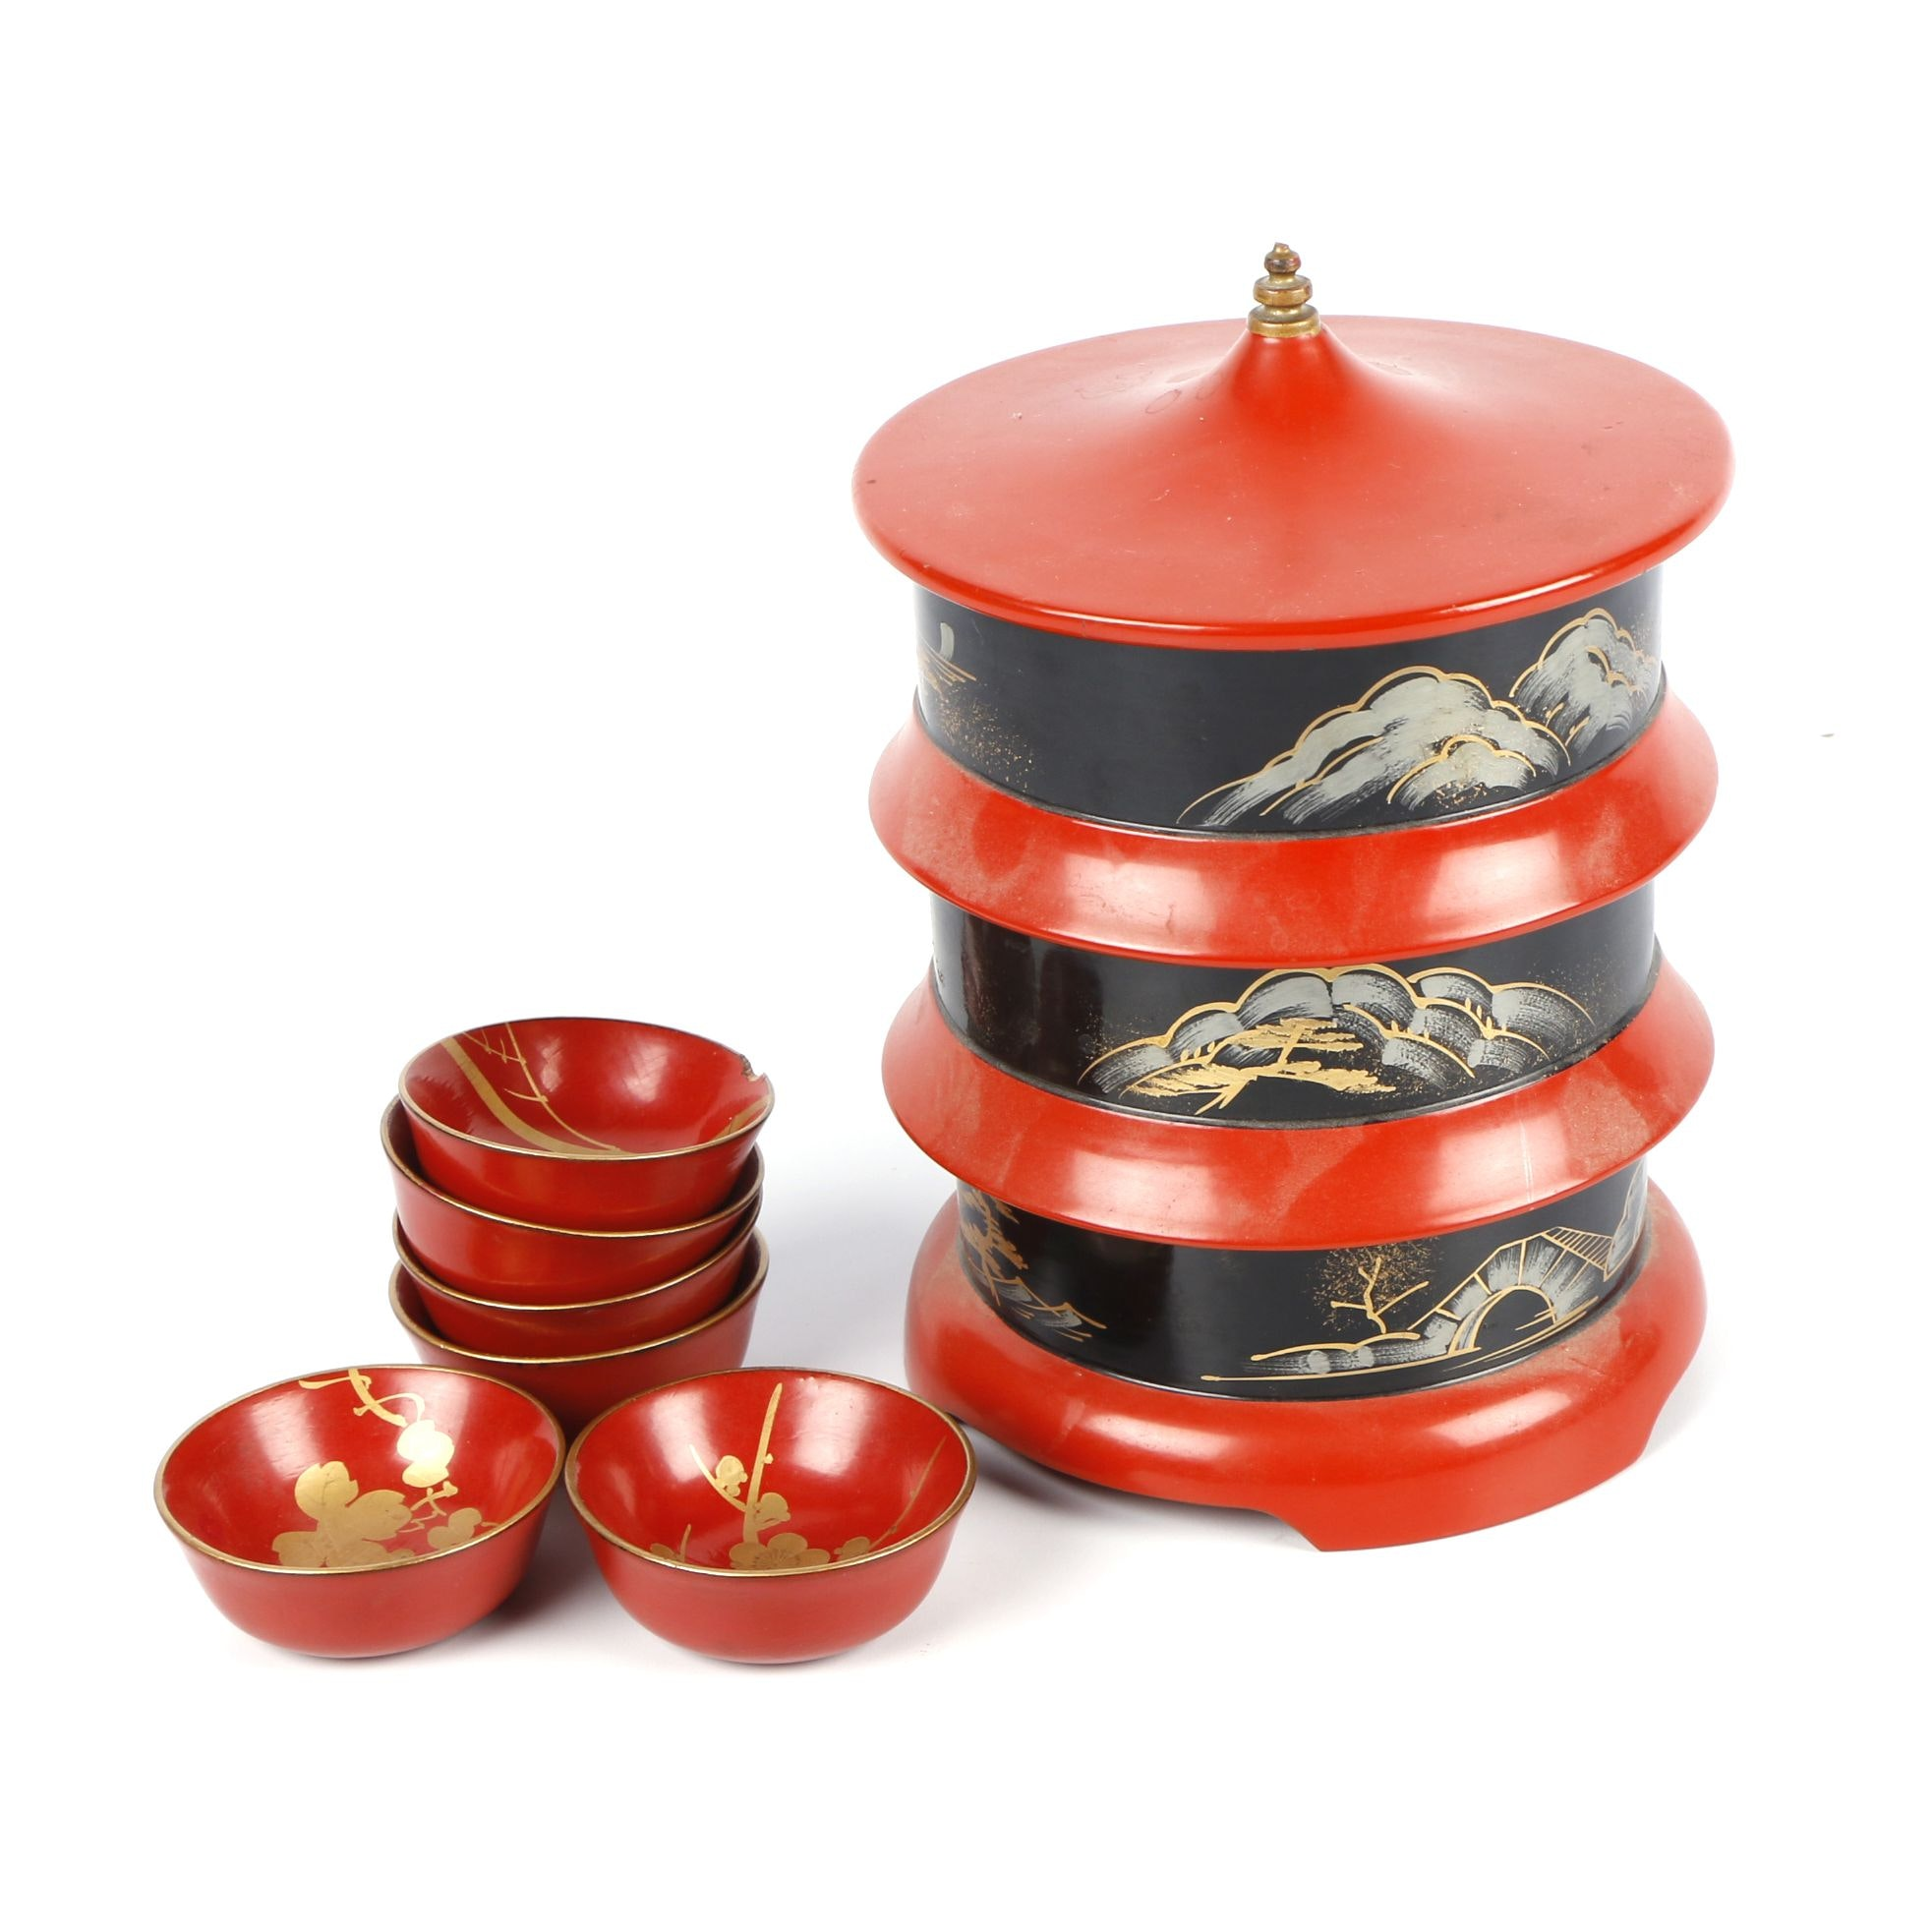 Vintage Japanese Urushi Lacquer Stacking Lunch Box and Dipping Bowls